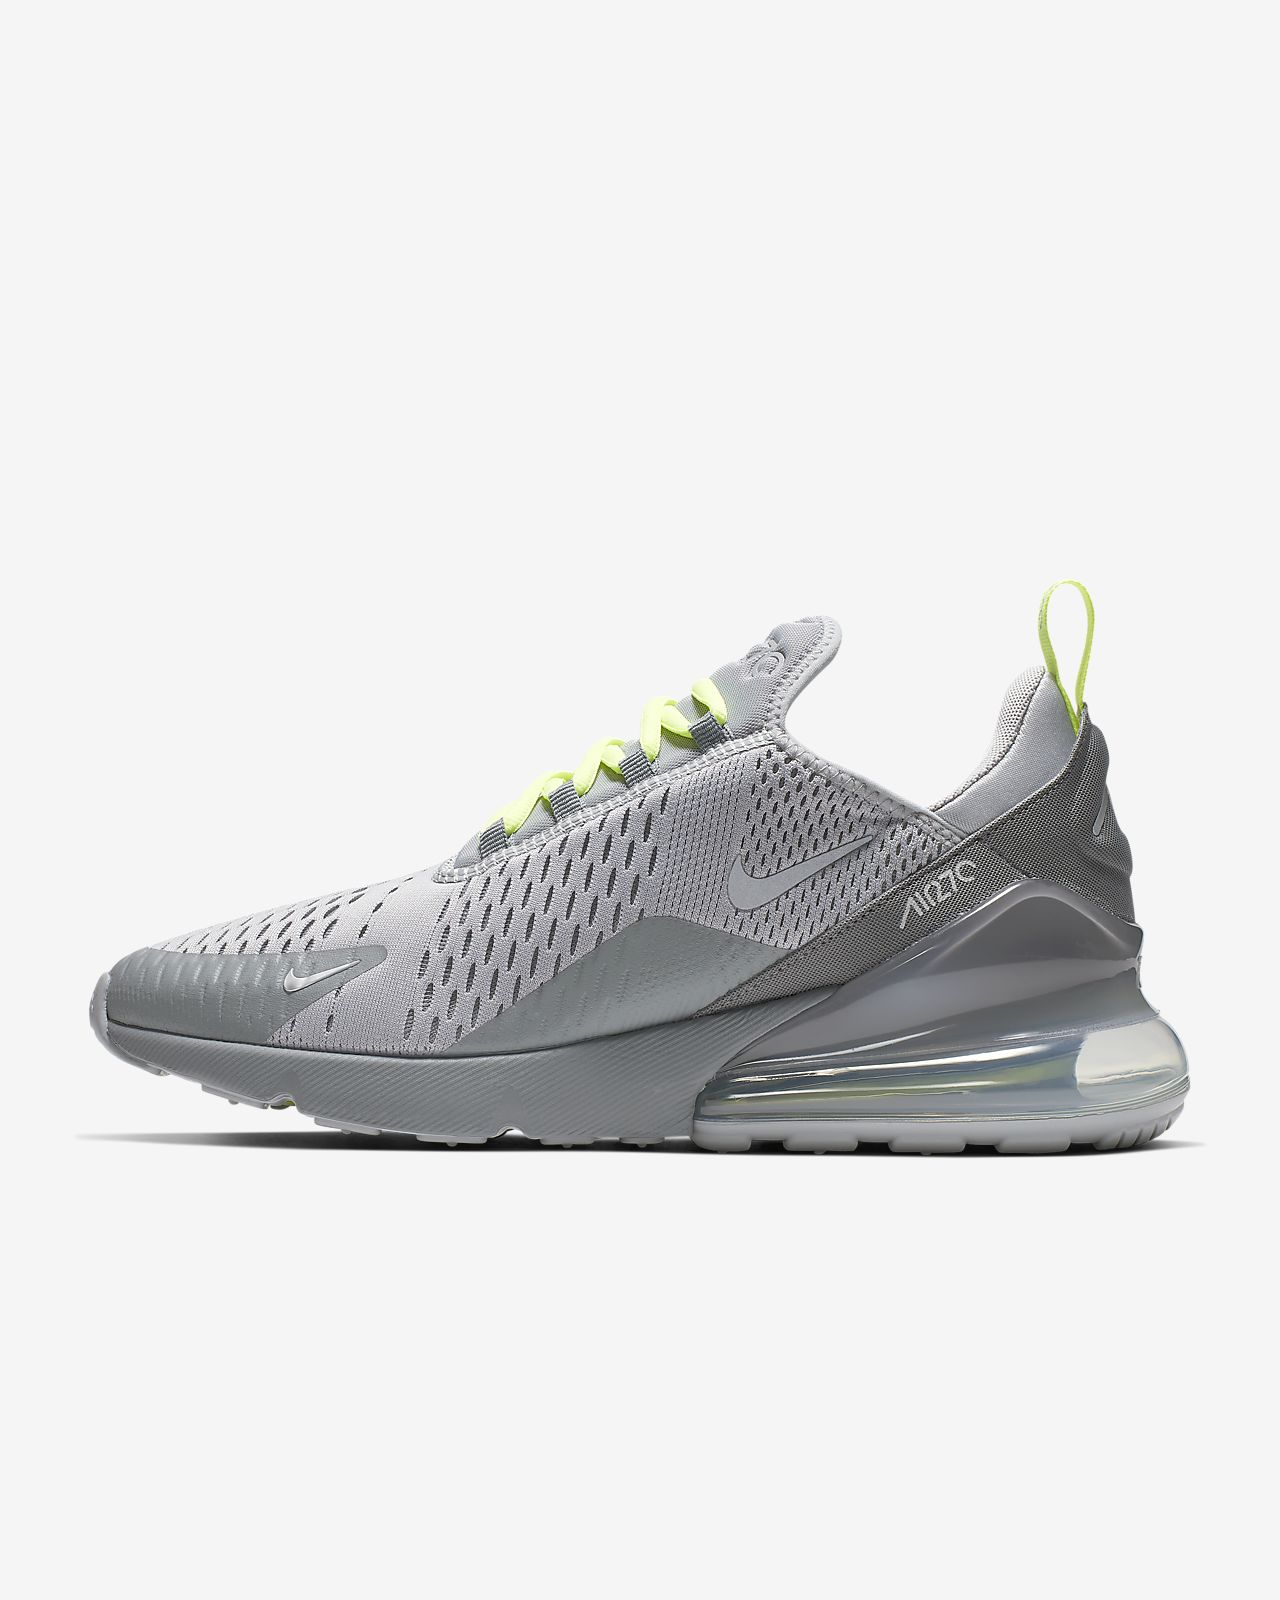 low priced ce3f7 fdbd1 ... Buty męskie Nike Air Max 270